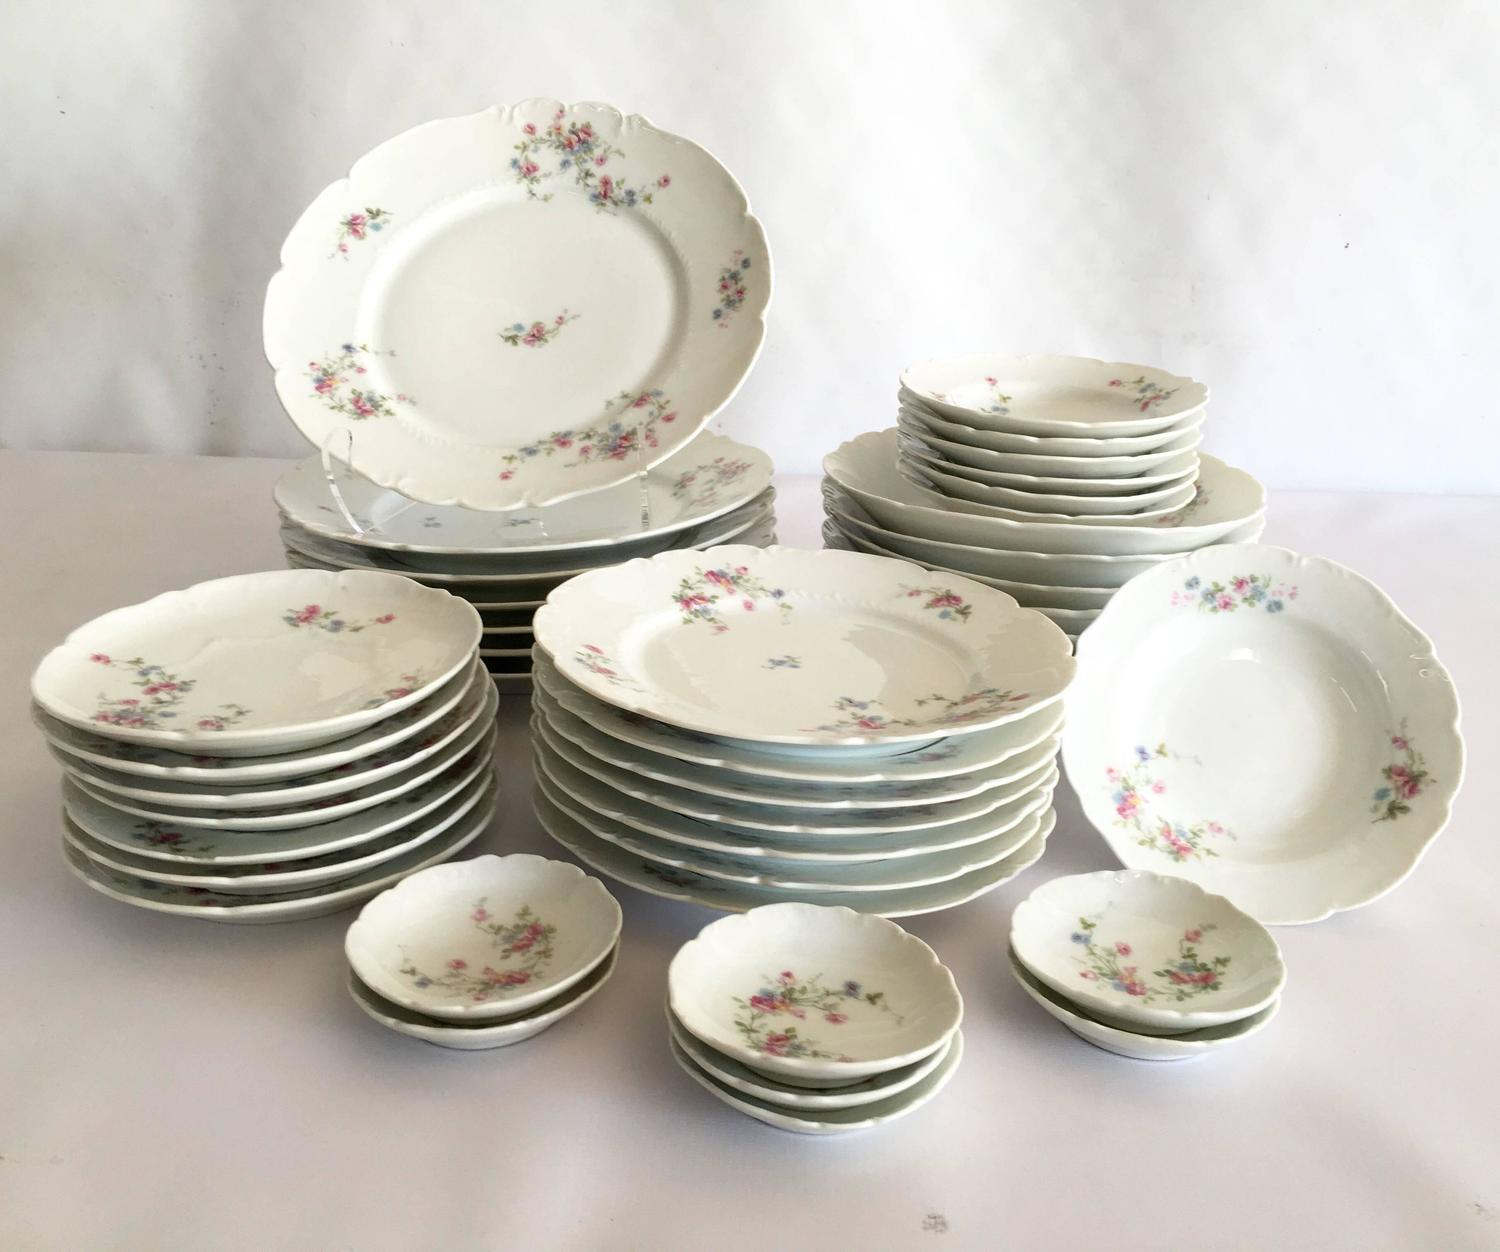 1920u0027S Limoge France 42 - Piece Set Of Dinnerware  Scattered Roses  at 1stdibs & 1920u0027S Limoge France 42 - Piece Set Of Dinnerware